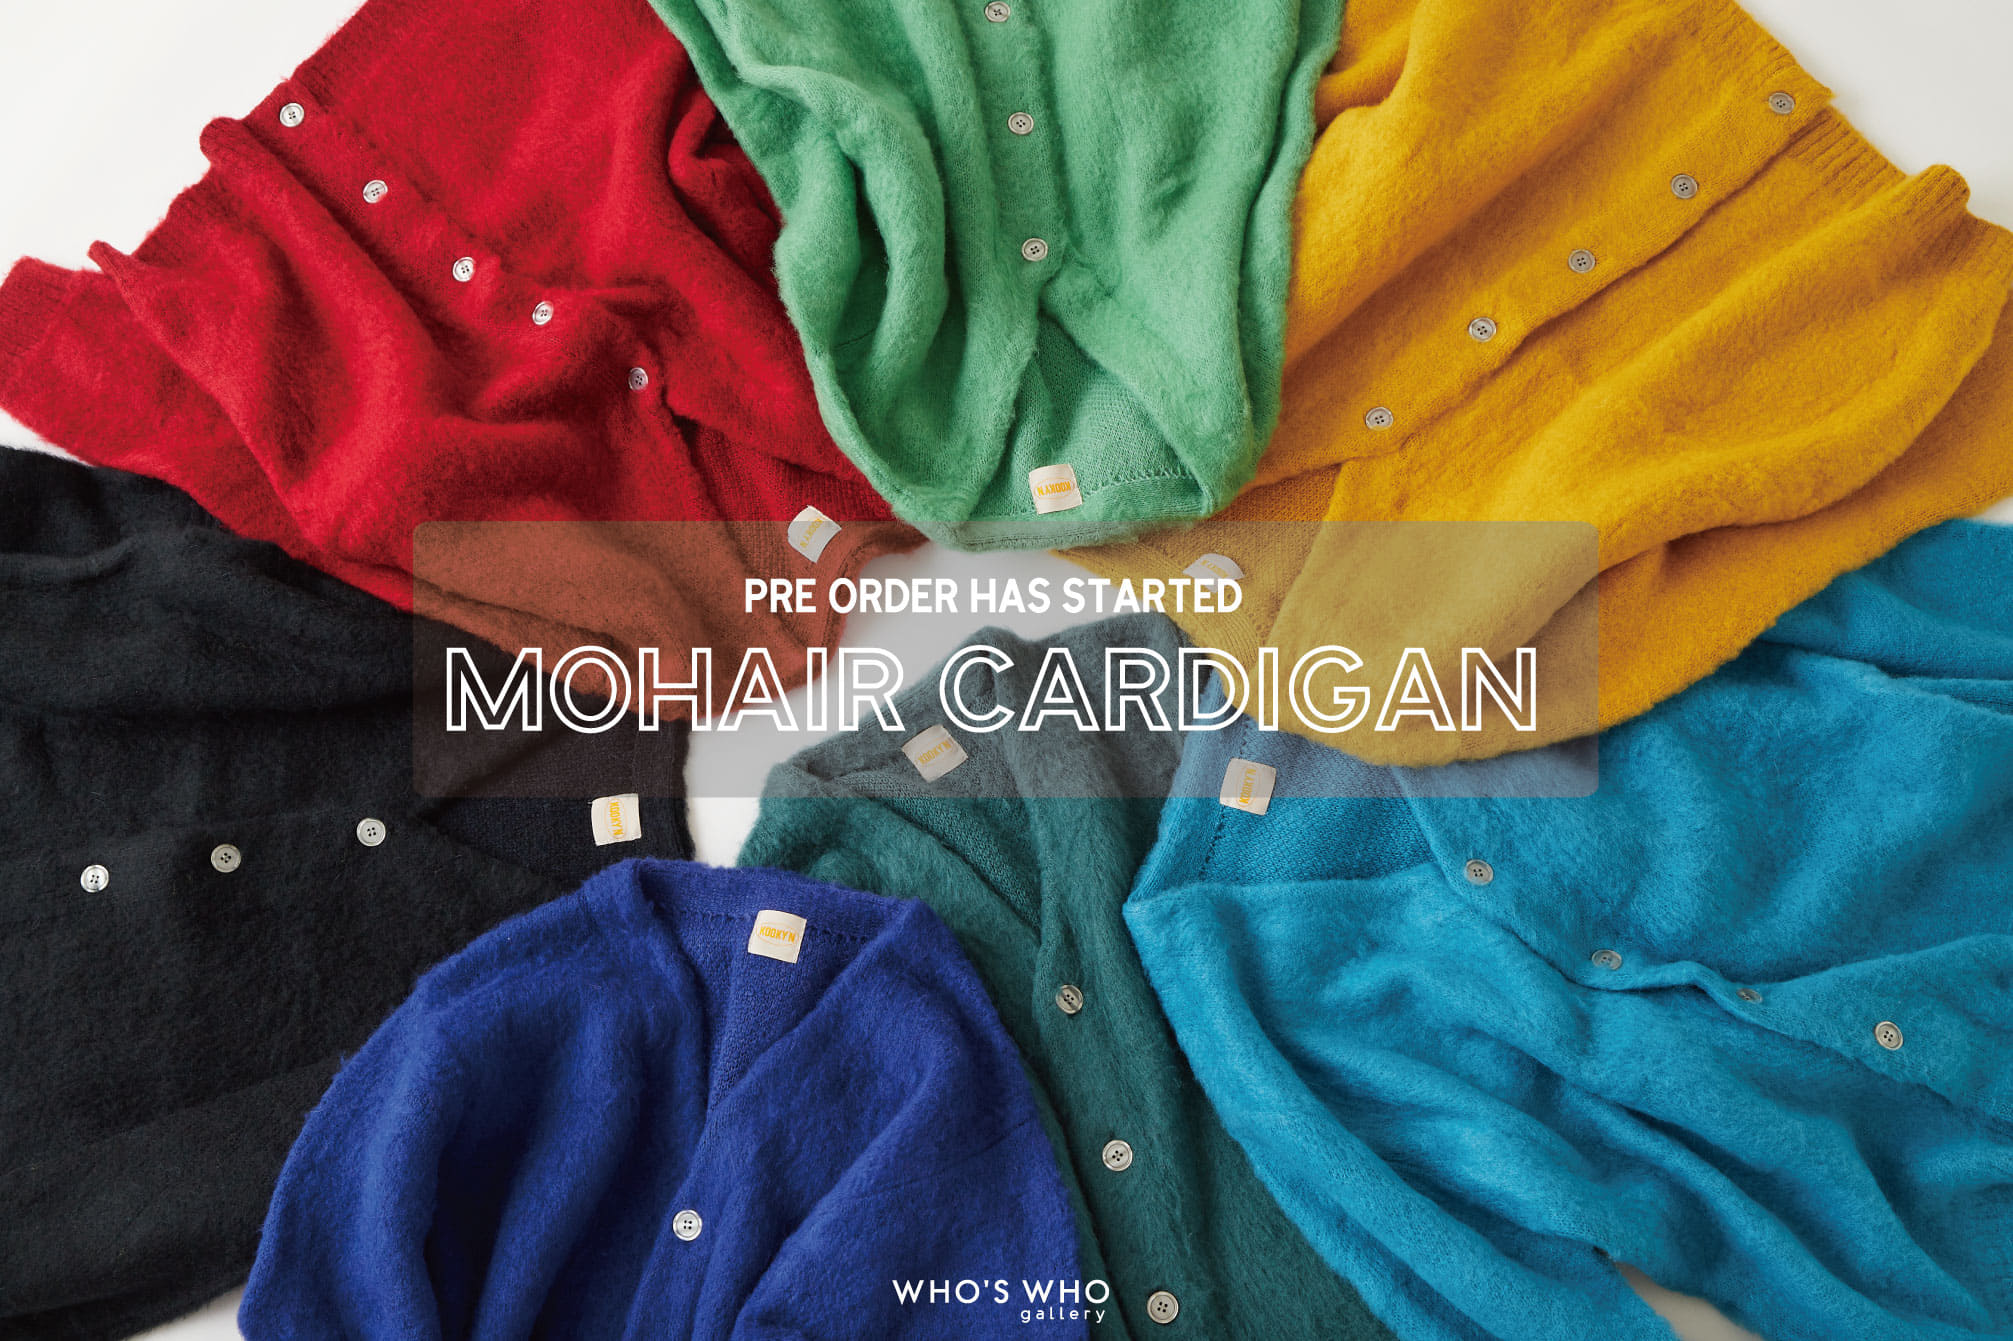 WHO'S WHO gallery 【帰ってきた!MOHAIR CARDIGAN】